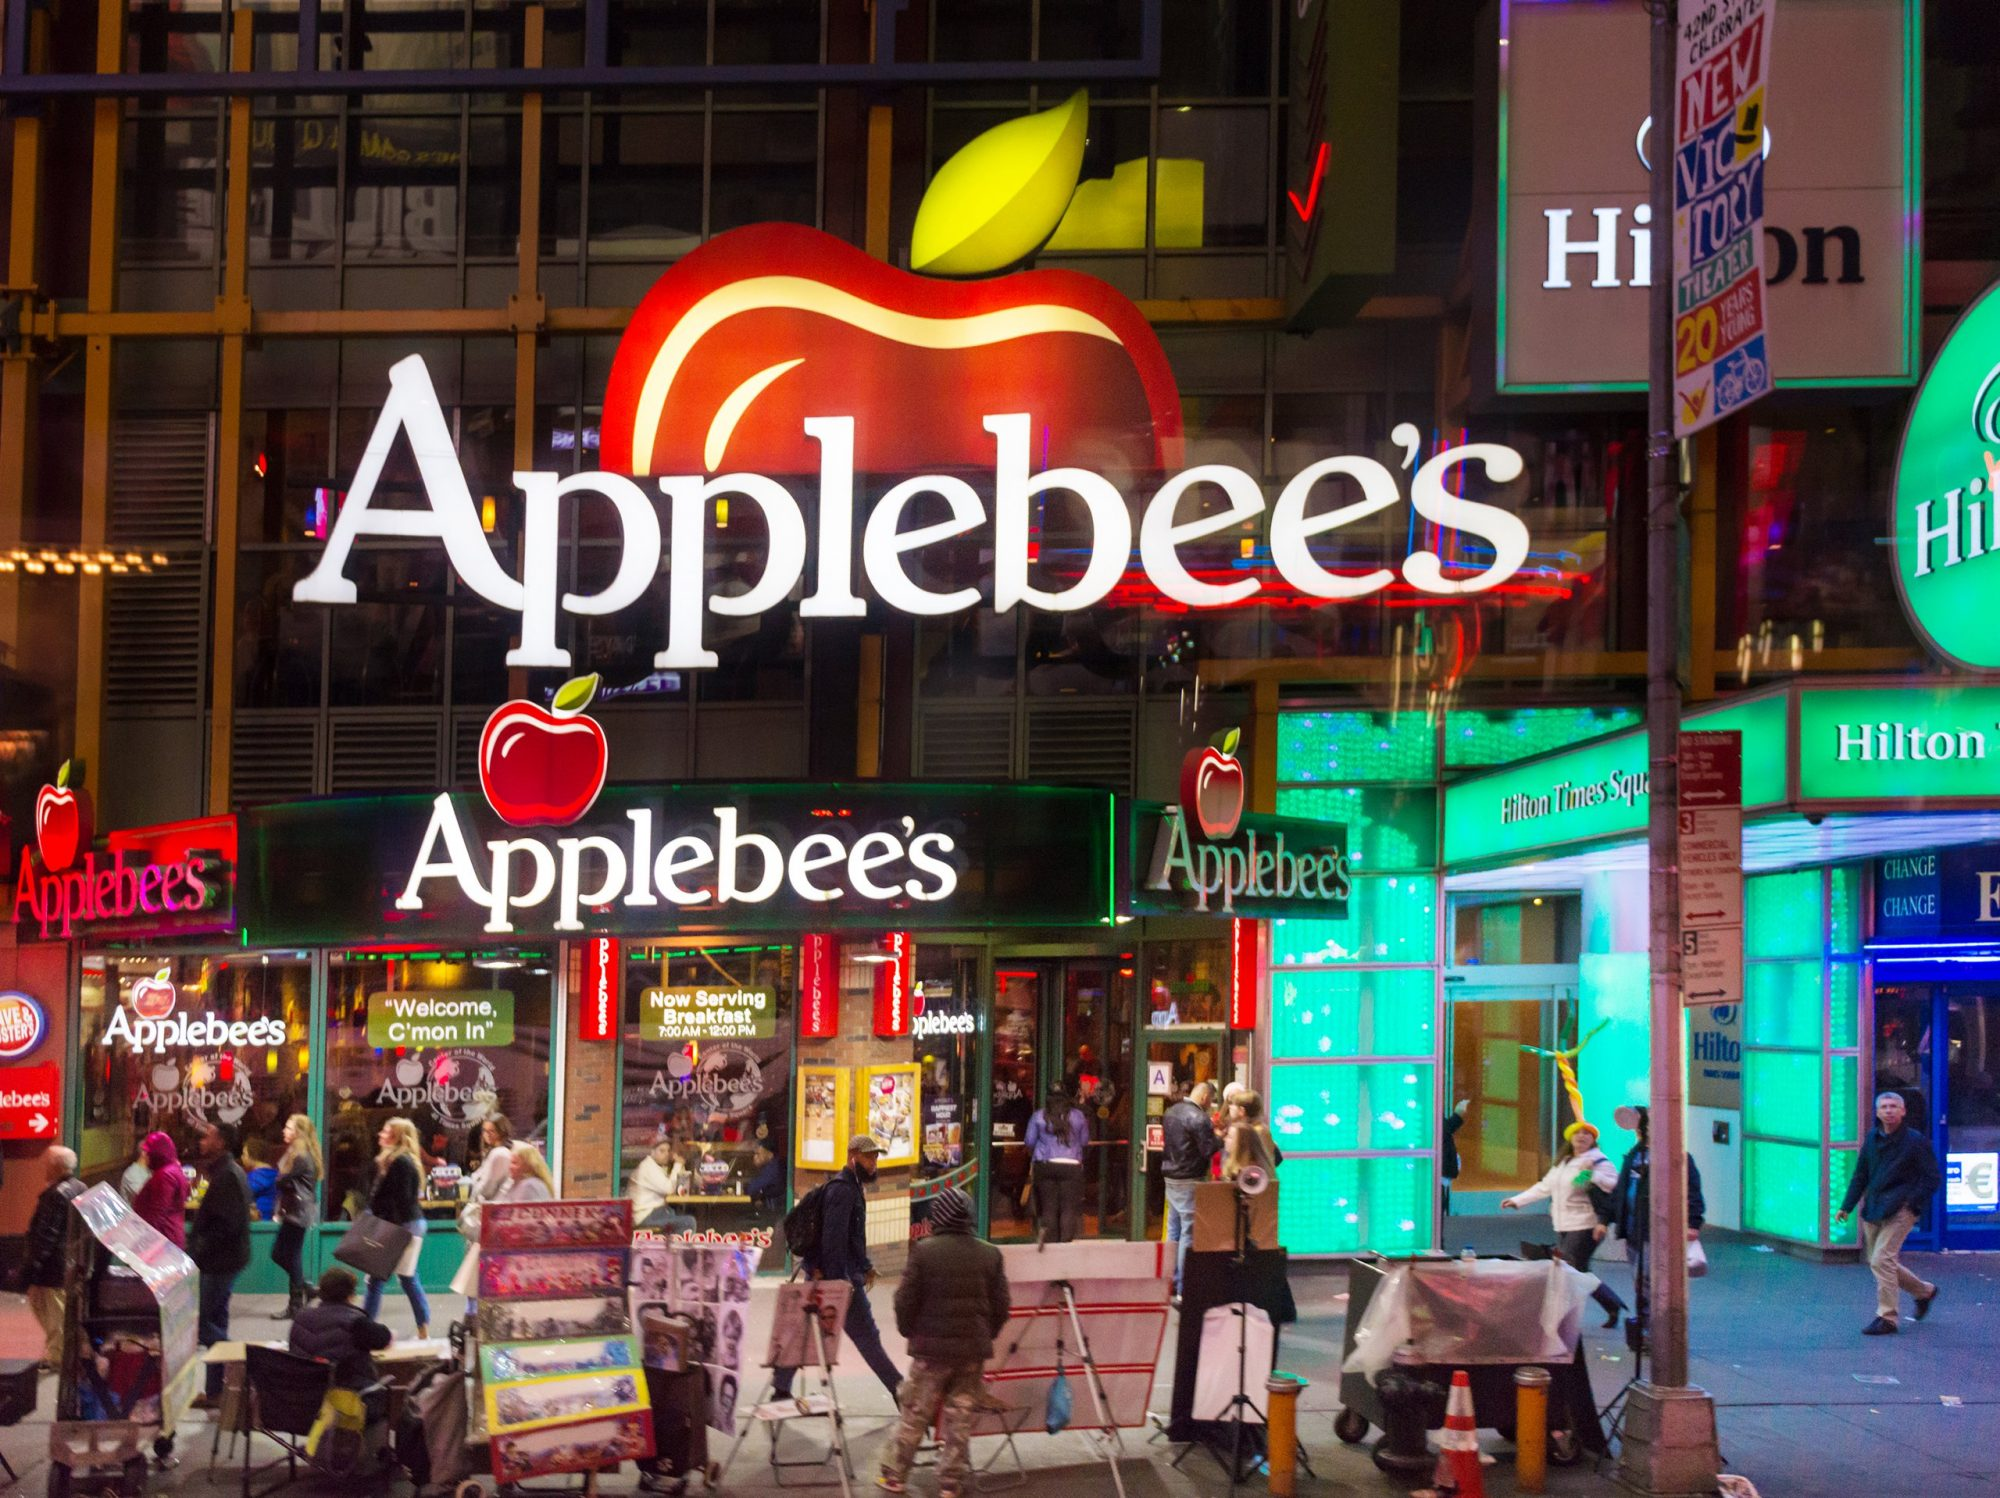 Applebee's restaurant at Times Square in New York City on Oct. 17, 2015.